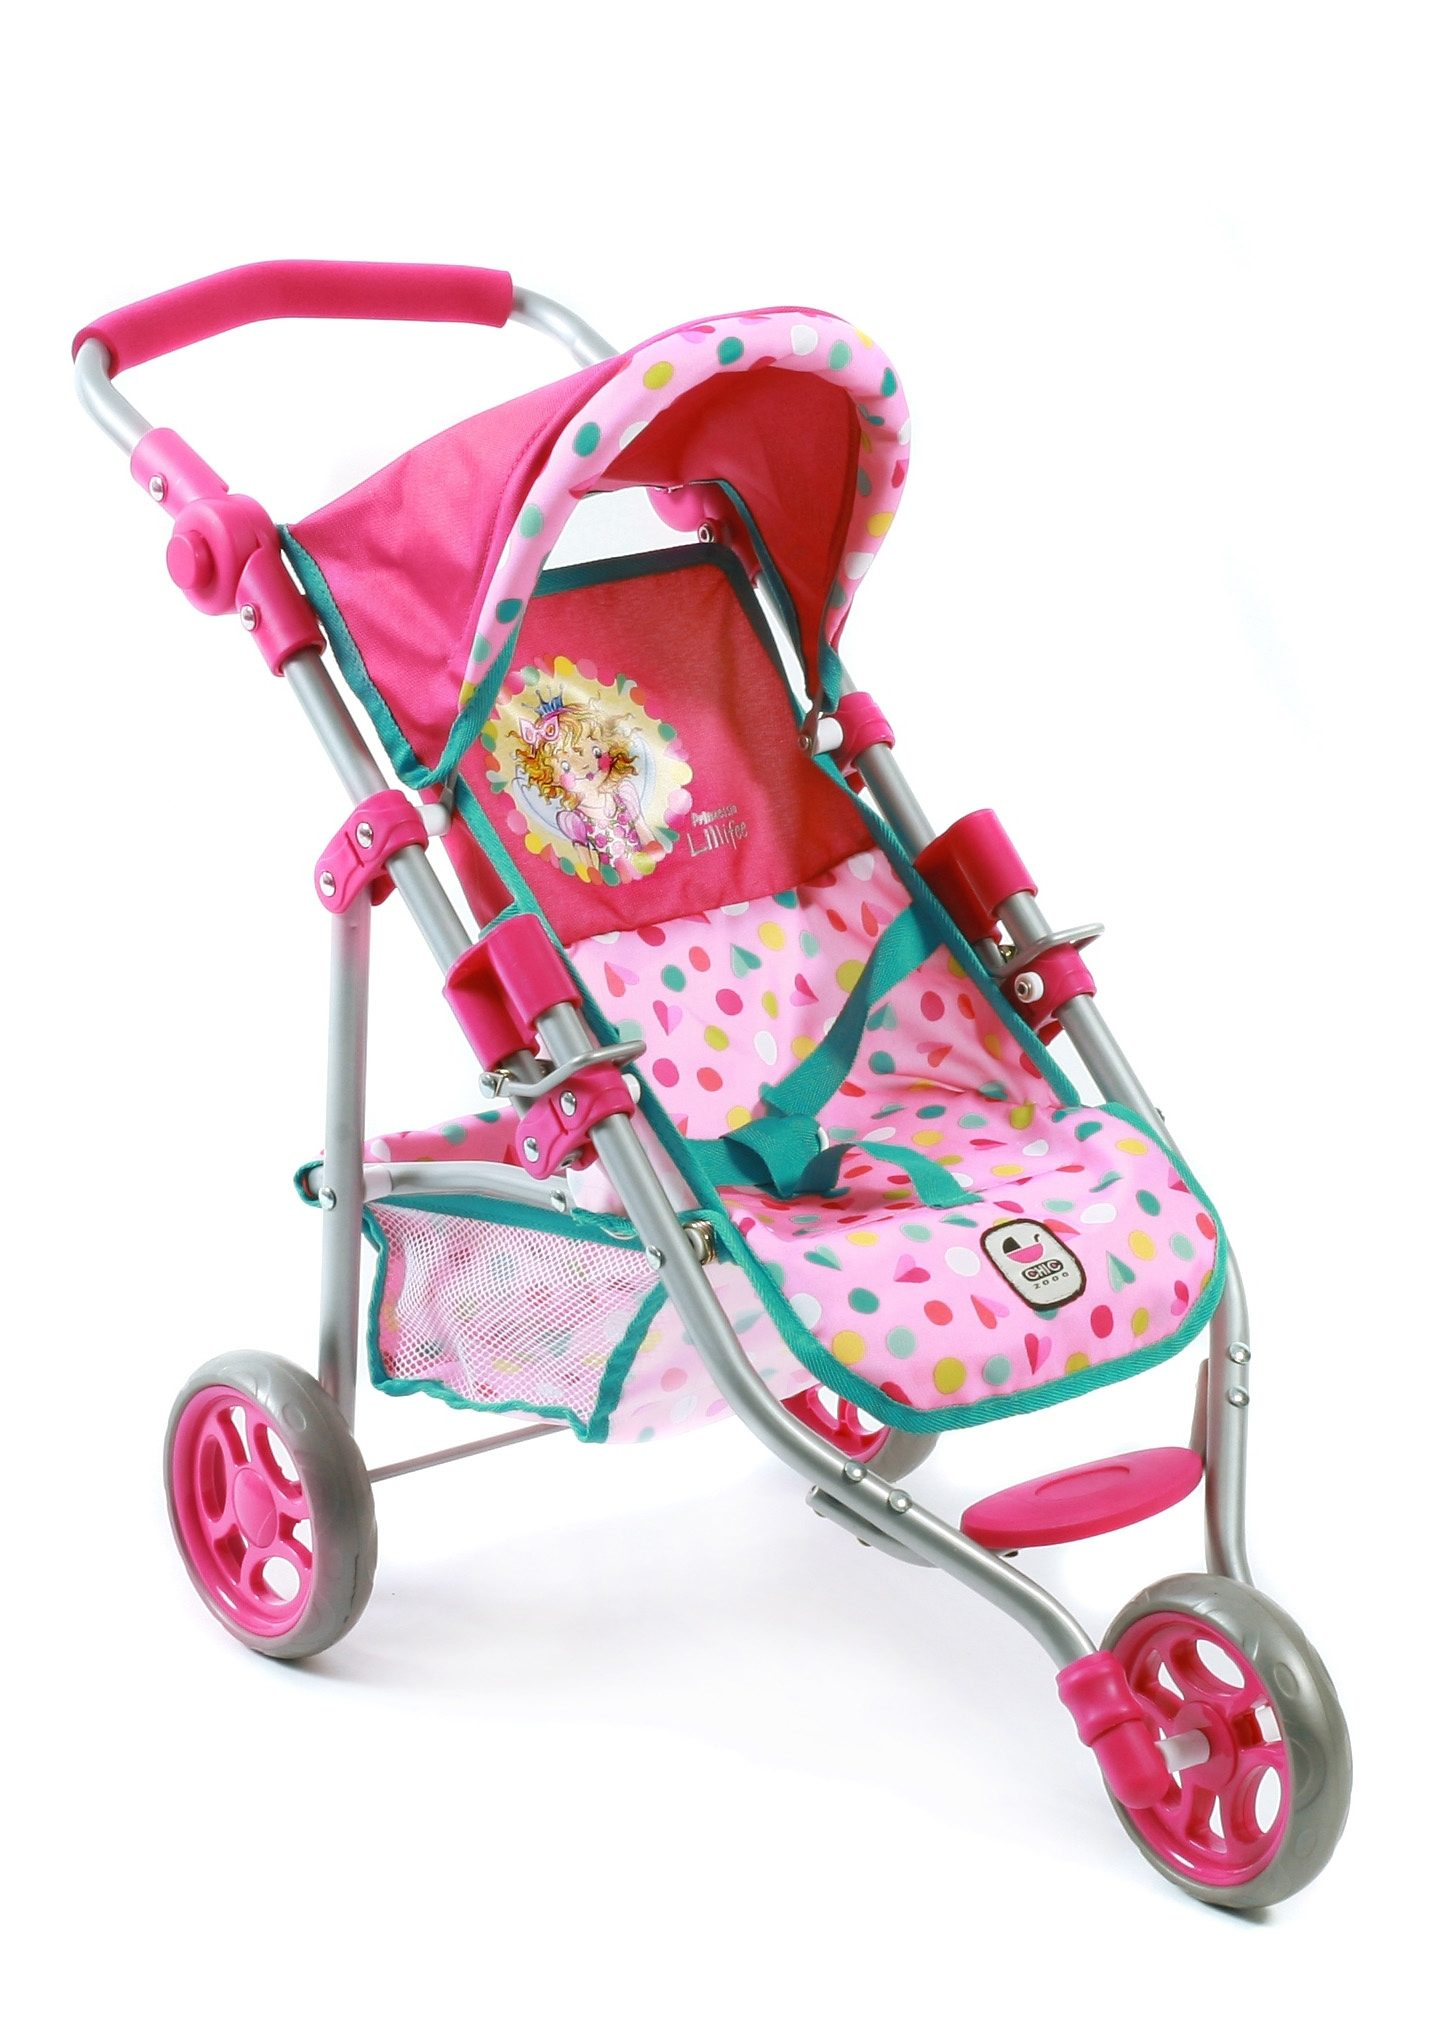 CHIC2000 Puppen-Jogging-Buggy, »Lola, Lillifee«